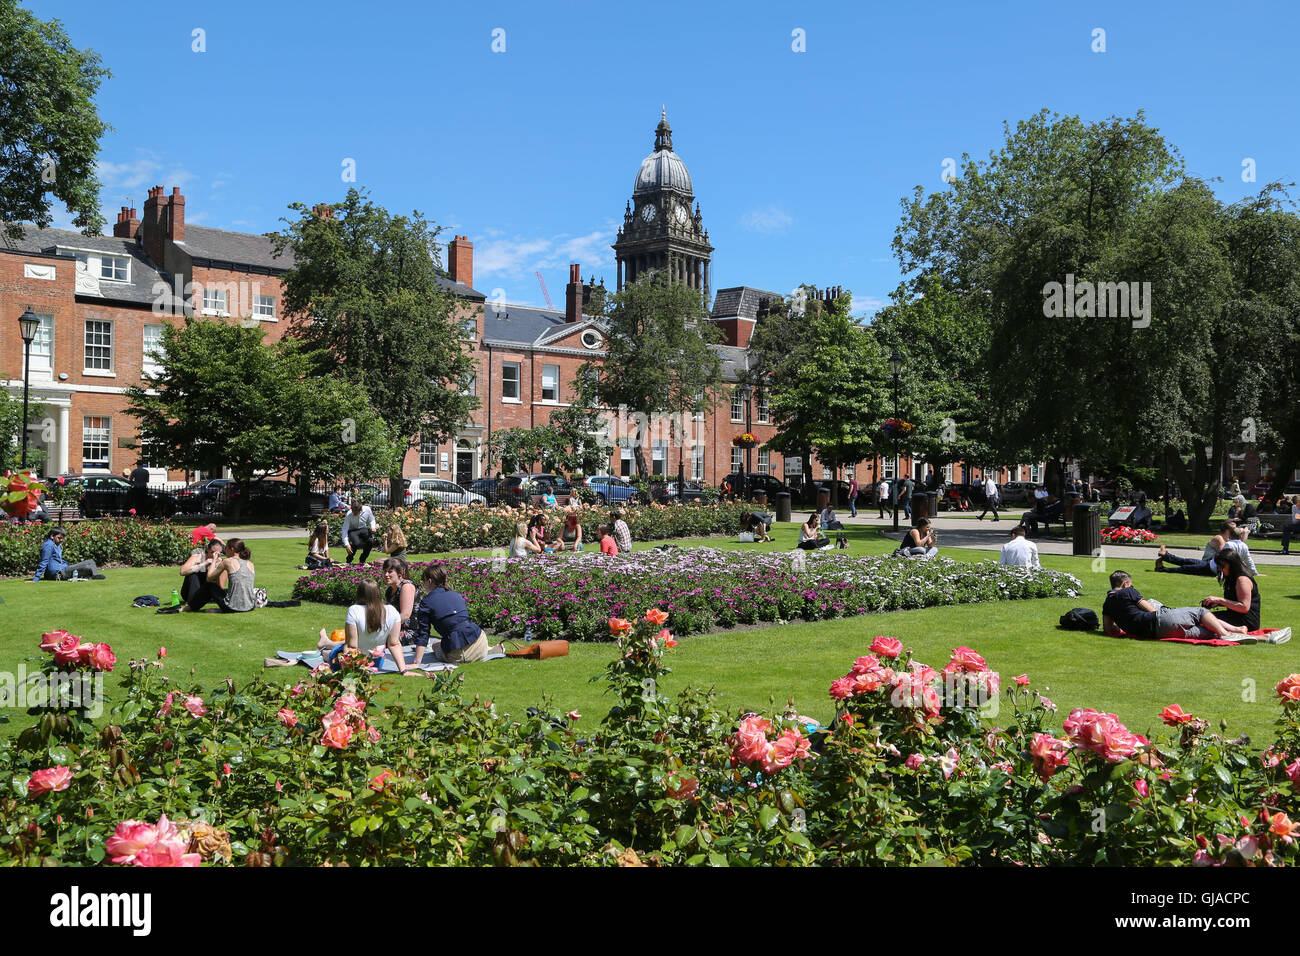 The view of Leeds Town Hall from Park Square in Leeds, West Yorkshire, on a hot sunny summers day. - Stock Image